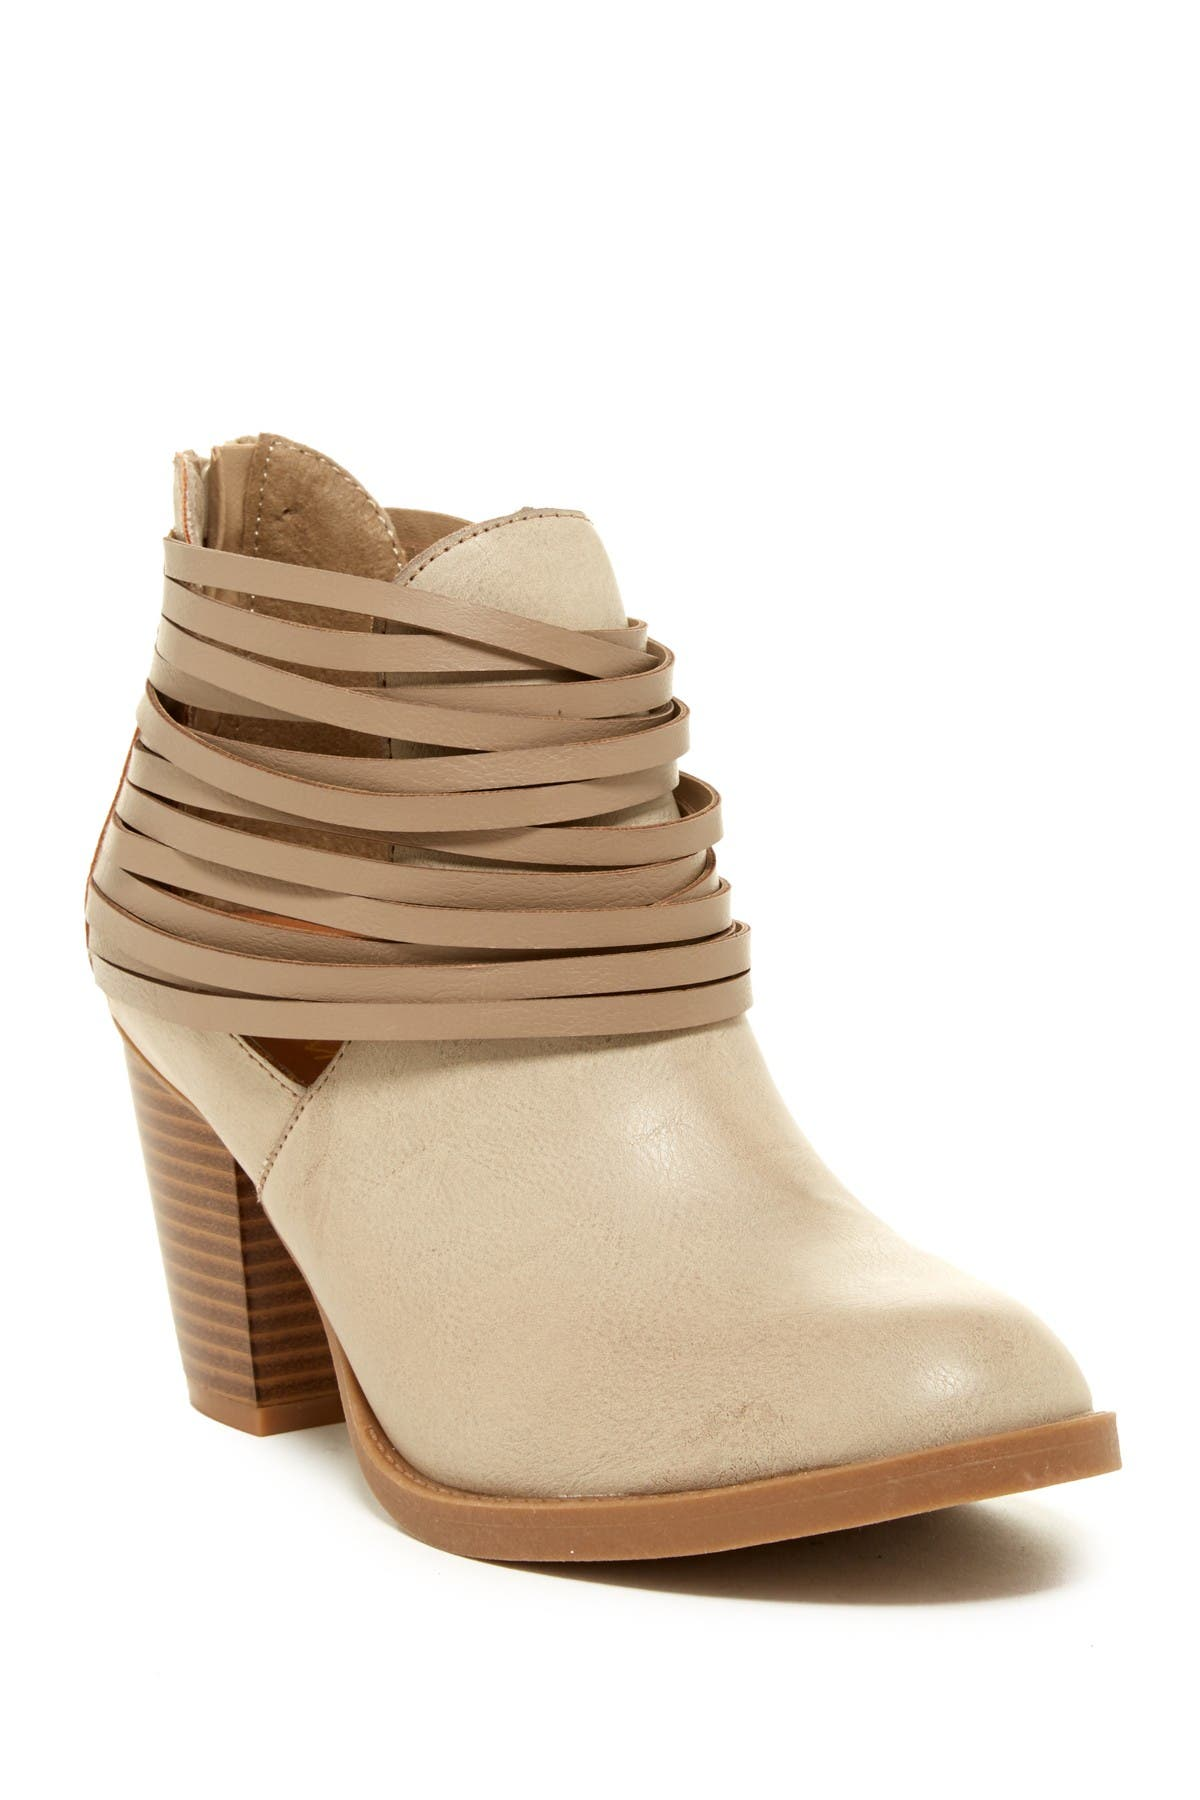 Image of Rampage Verna Ankle Boot